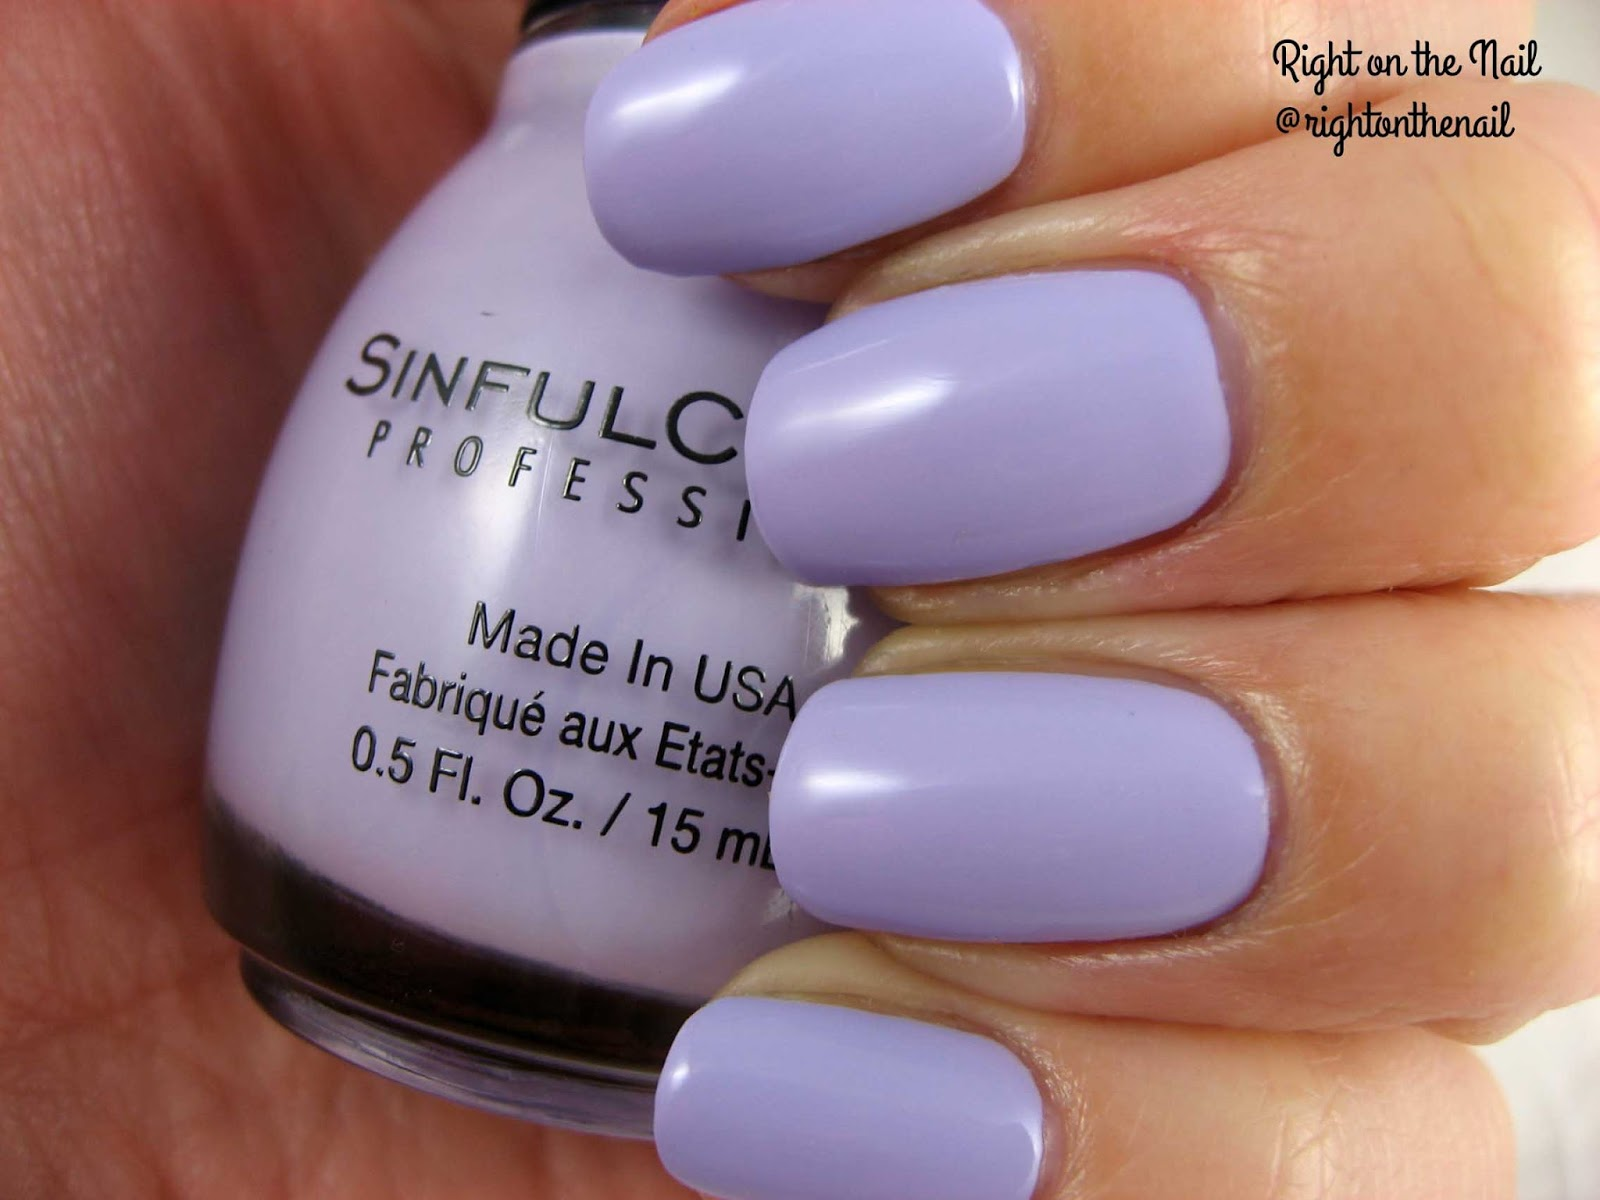 Right on the Nail: Right on the Nail ~ March 2016 Target ...